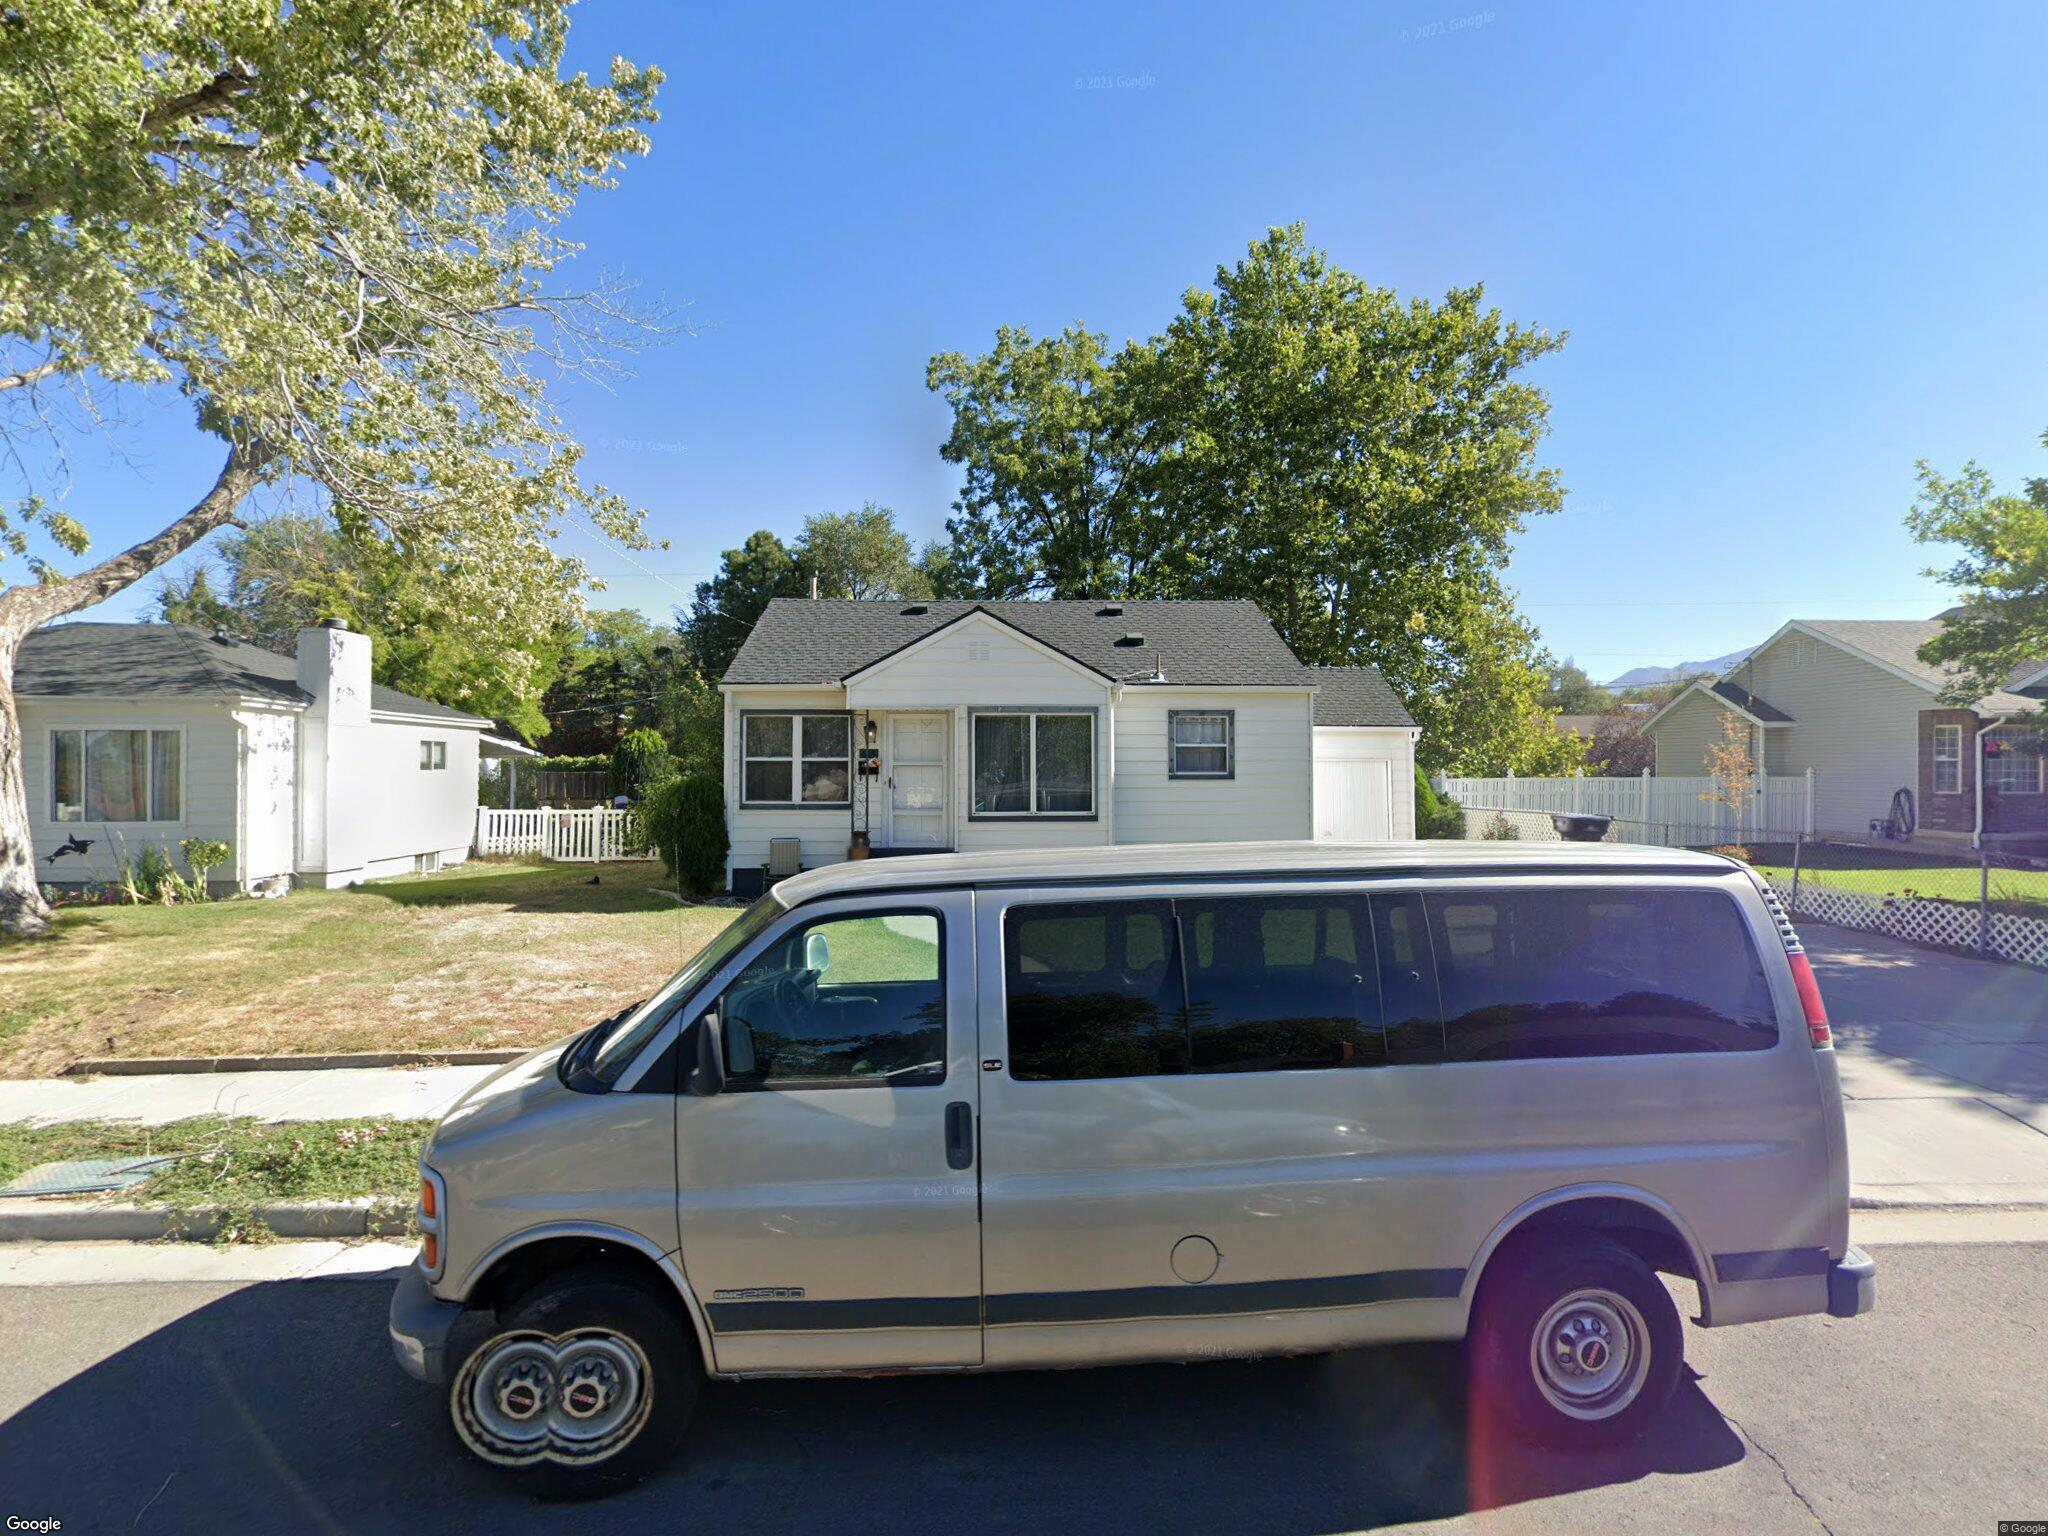 Clearfield Utah Zip Code Map.613 Maple St Clearfield Ut 84015 3 Bed 2 Bath Single Family